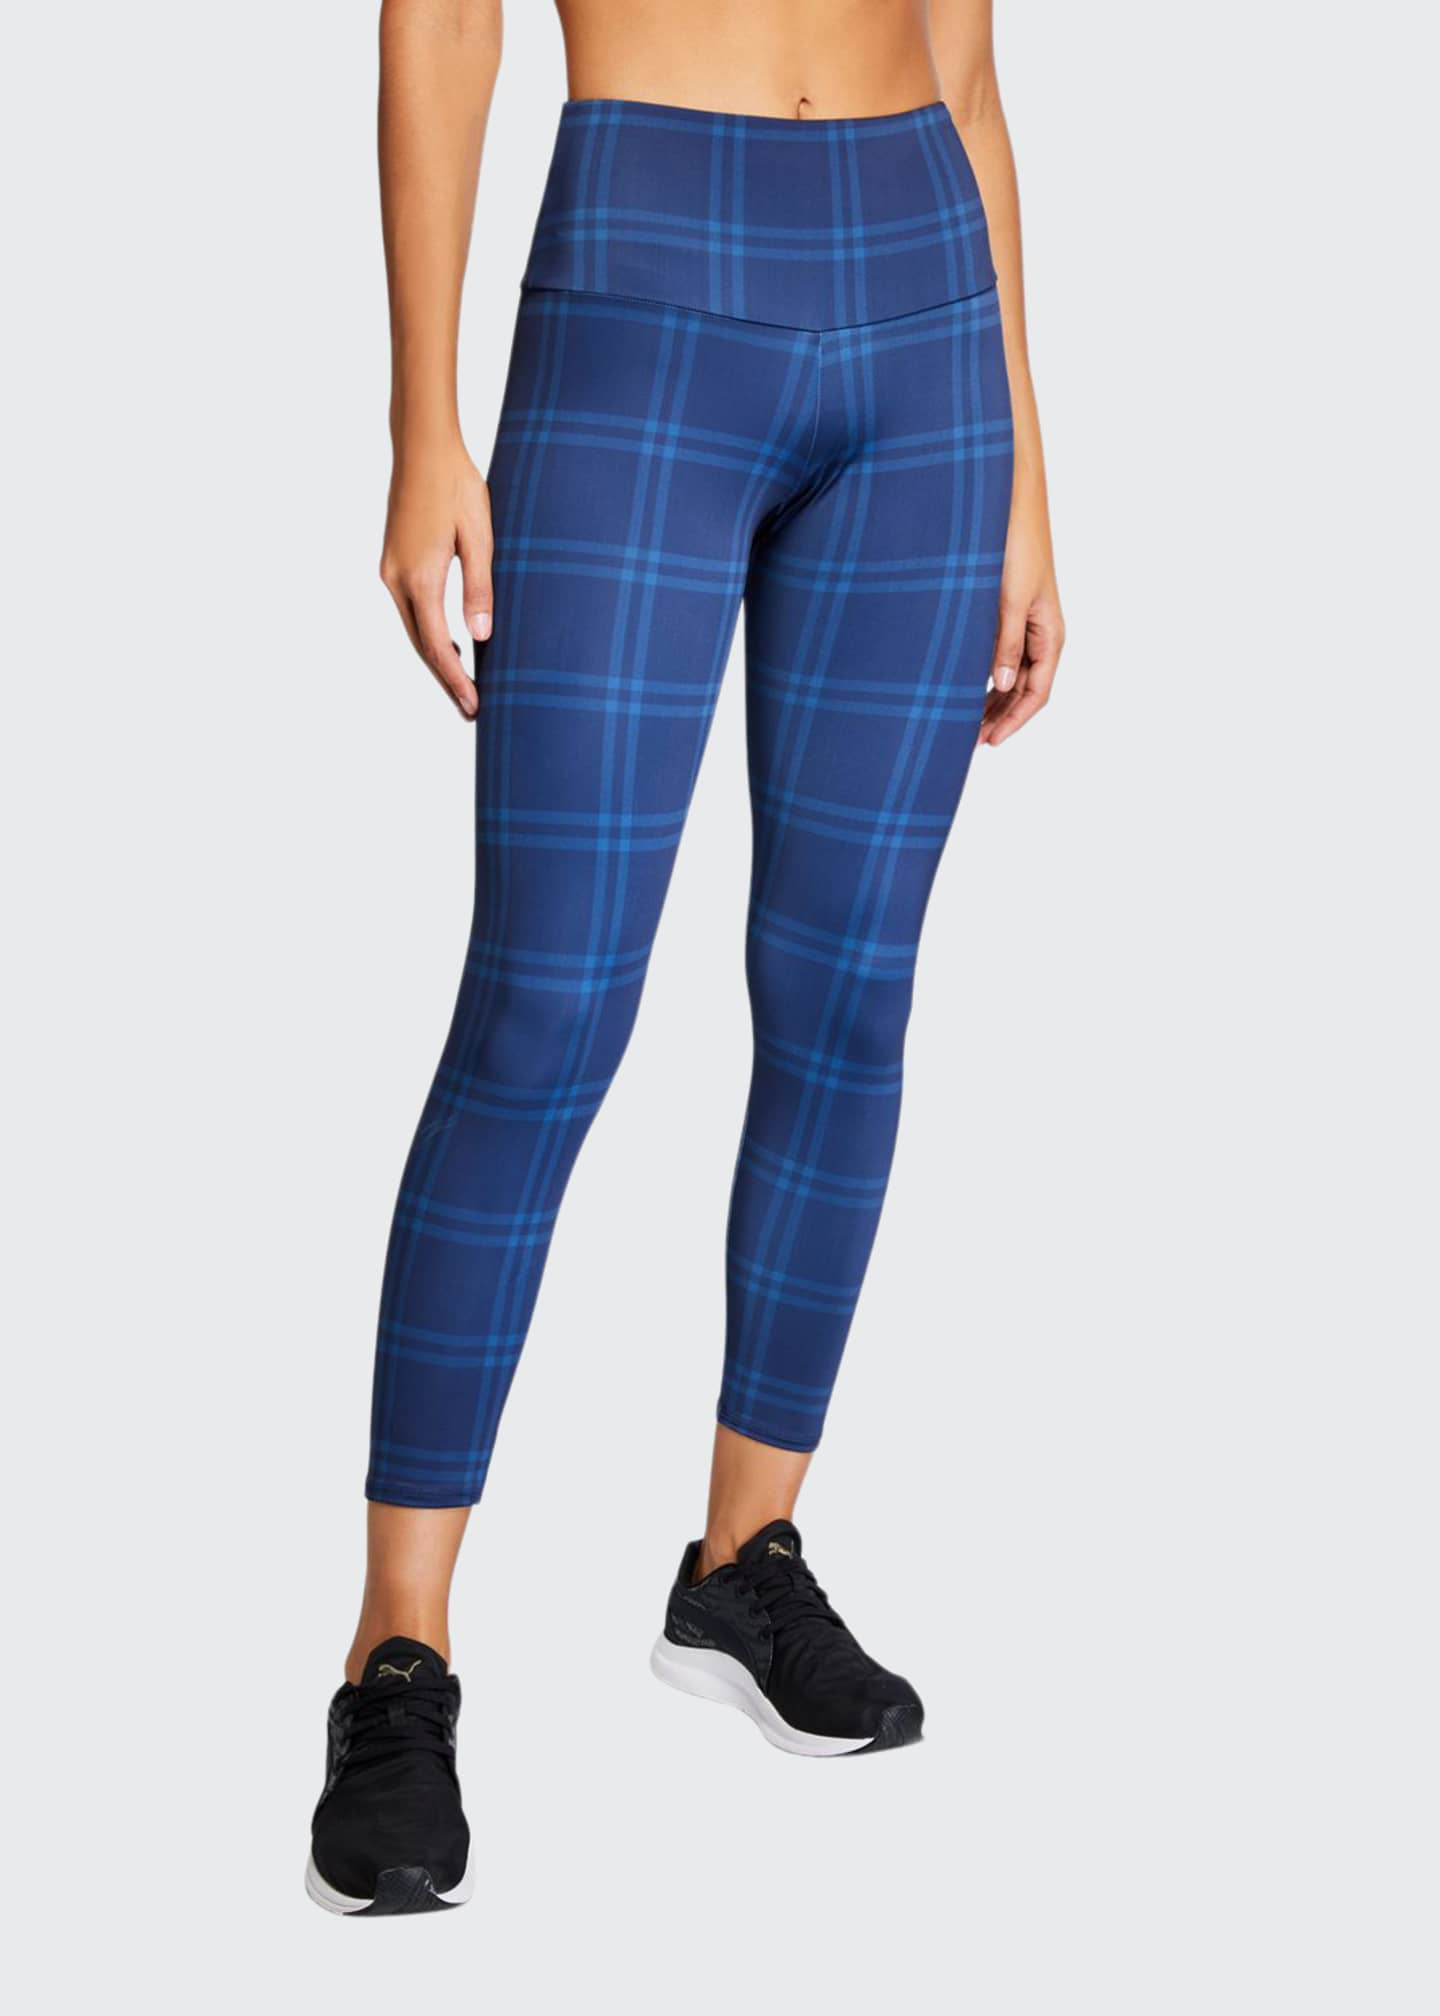 Onzie High-Rise Basic Plaid Midi Leggings